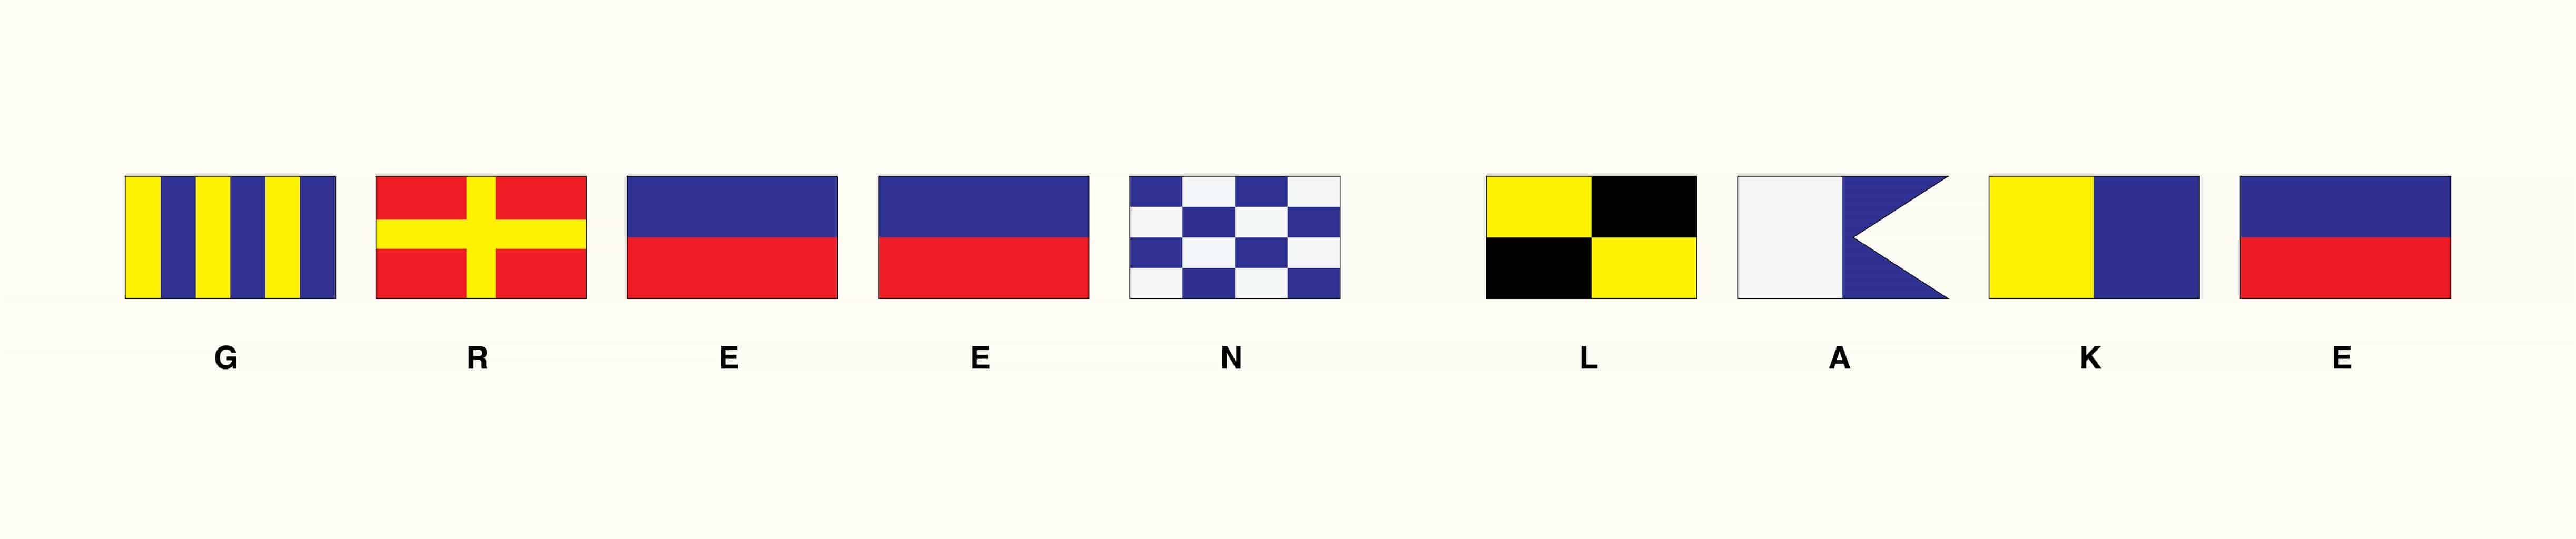 Green Lake Signal Flags GLSF - Framed Artwork from Interior Elements, Eagle WI